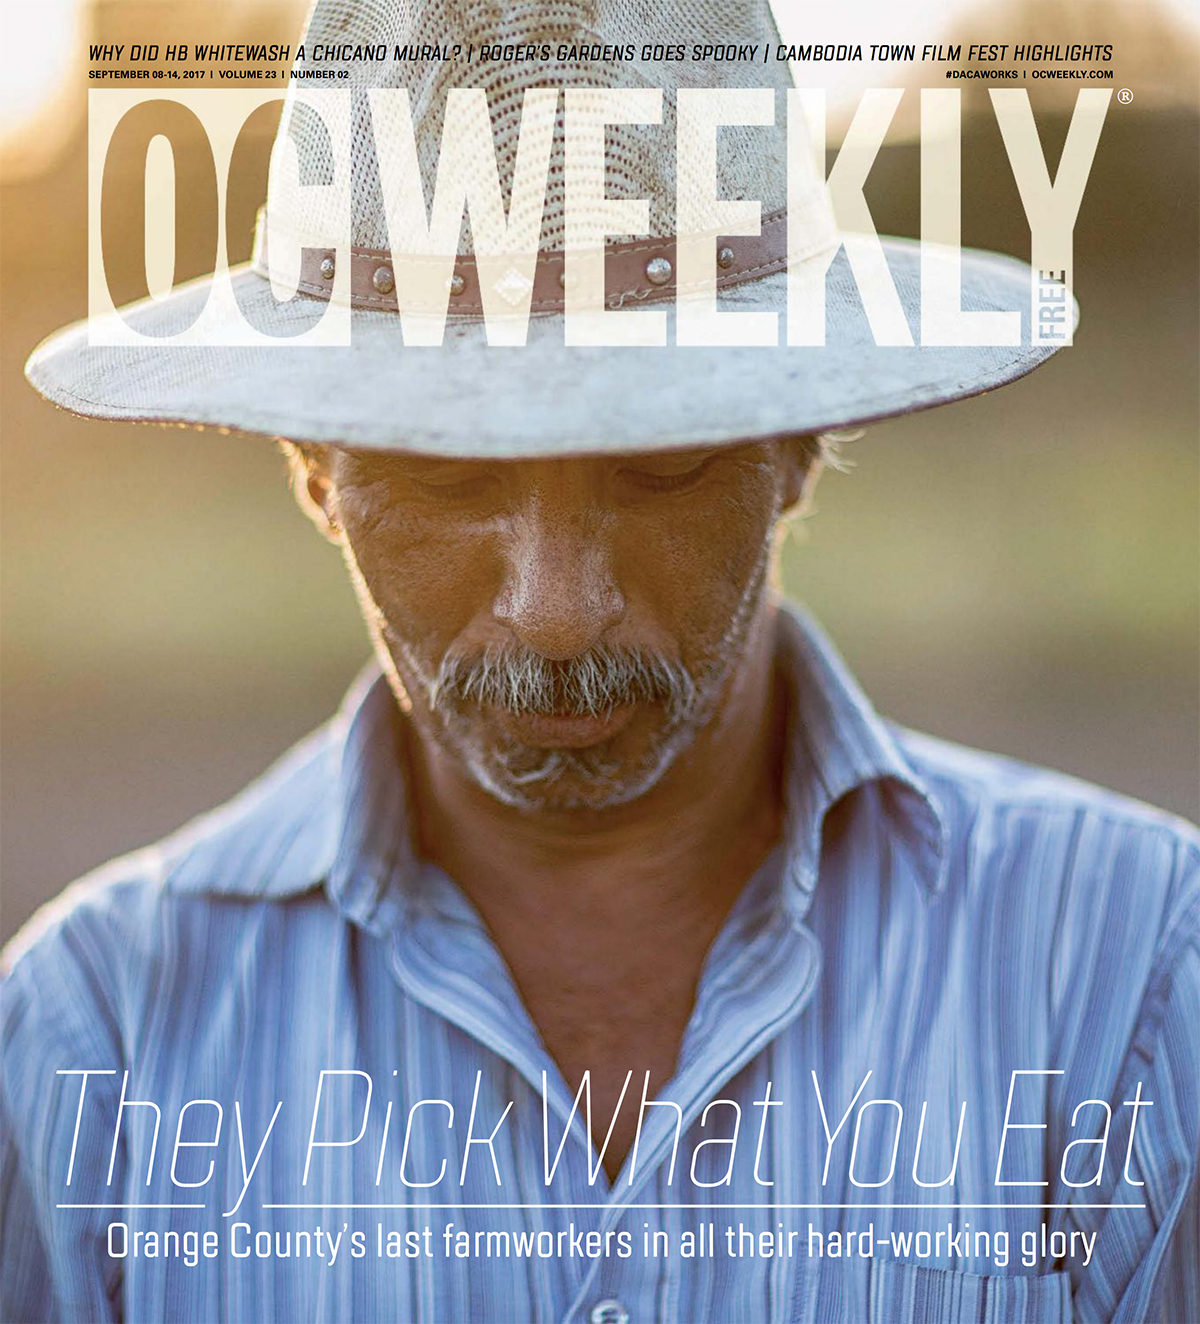 OC Weekly Photo Essay - I started my immigrant photography project as a response to the negative statements made by then-presidential candidate Donald Trump about Mexicans. I was so upset to hear him make such hateful comments that I wanted to do something about it.Both of my parents are immigrants from Mexico. I grew up working alongside many Mexican immigrants in our former family business, JC Fandango in Anaheim. Working in the hospitality industry at a young age gave me a unique perspective: They are often discriminated against, disrespected and very much under-appreciated. So I started taking photos.My original idea with this project was to send a political message without attacking anyone. I chose to take this approach to increase the reach of my message. I do believe this has worked, and I am happy to hear positive feedback from my photos and posts.Then Charlottesville happened, followed by an anti-immigration rally in Laguna Beach. These hate groups made me realize that my project was even more important than I had first imagined.My goal is to open some eyes. My hope is that when people see my photographs, they might be inspired to leave an extra-nice tip on their pillow for Guadalupe in housekeeping; say,